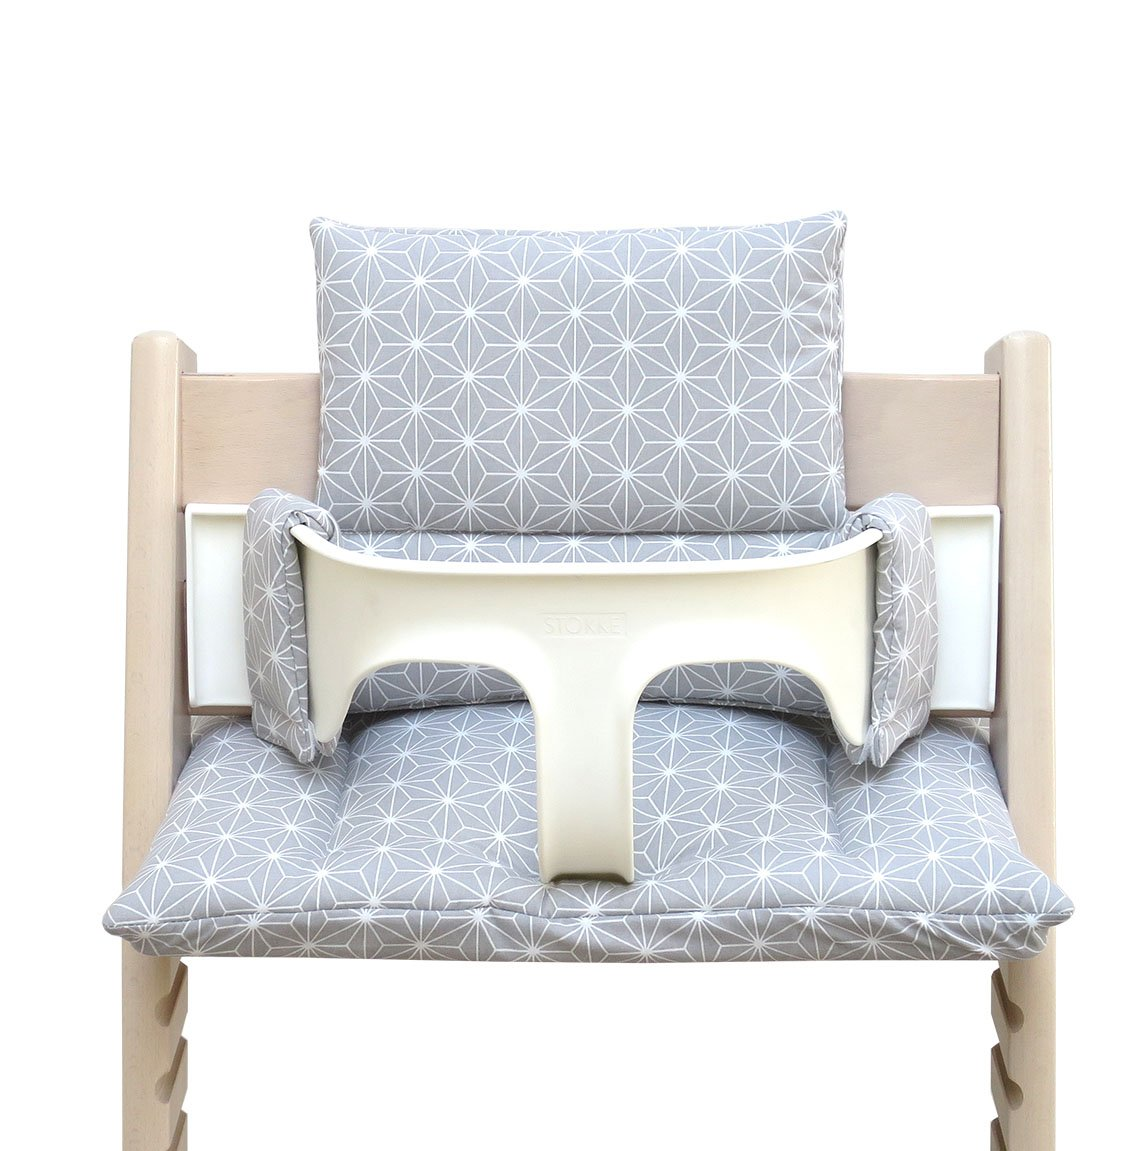 Blausberg Baby - Coated Cushion Set for Tripp Trapp High Chair of Stokke - Happy Star Gray